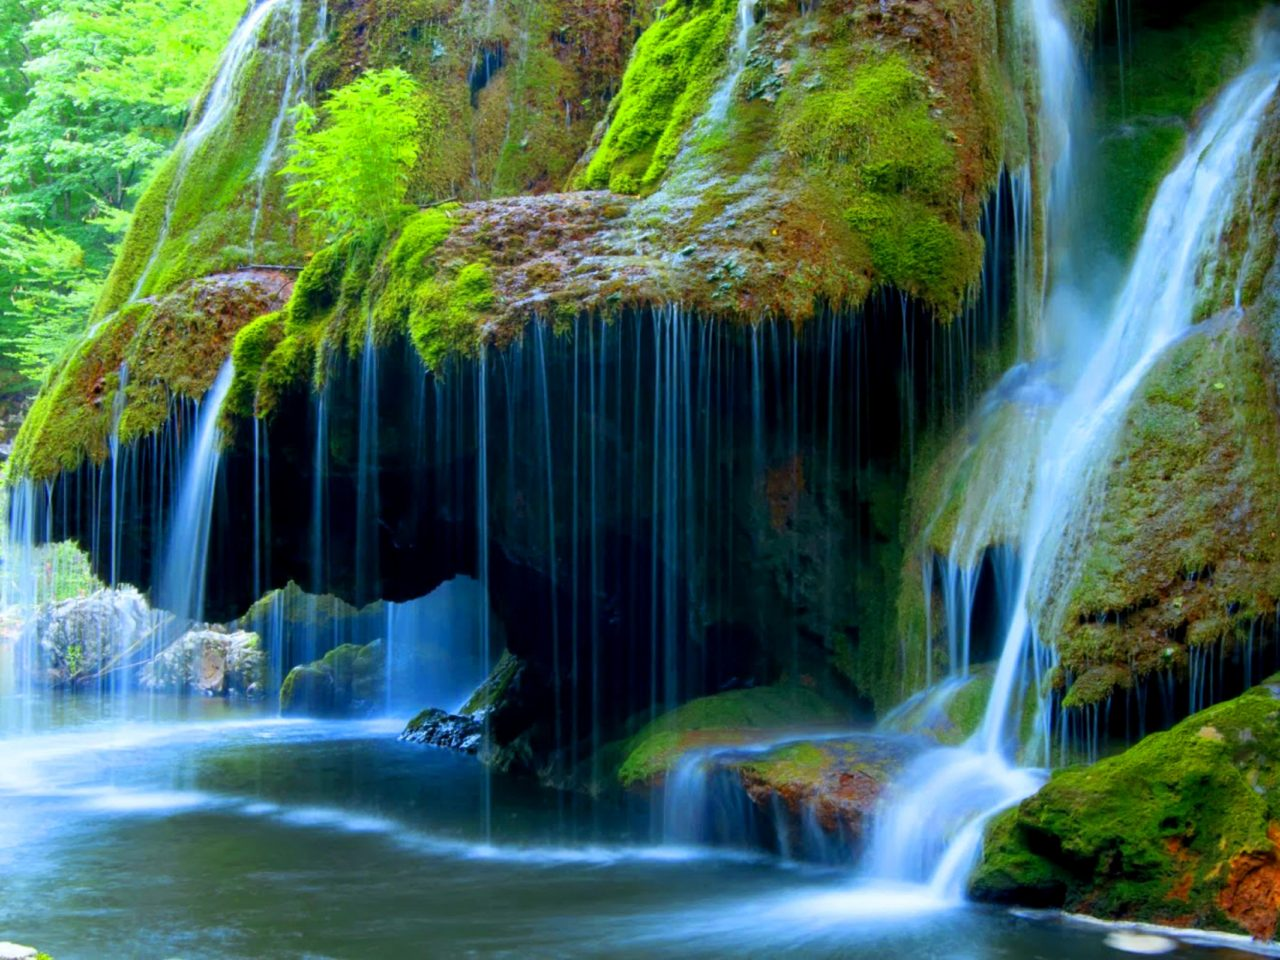 Falls Hd Wallpaper Free Download Bigar Cascade Falls Beautiful Waterfall In Caras Severin